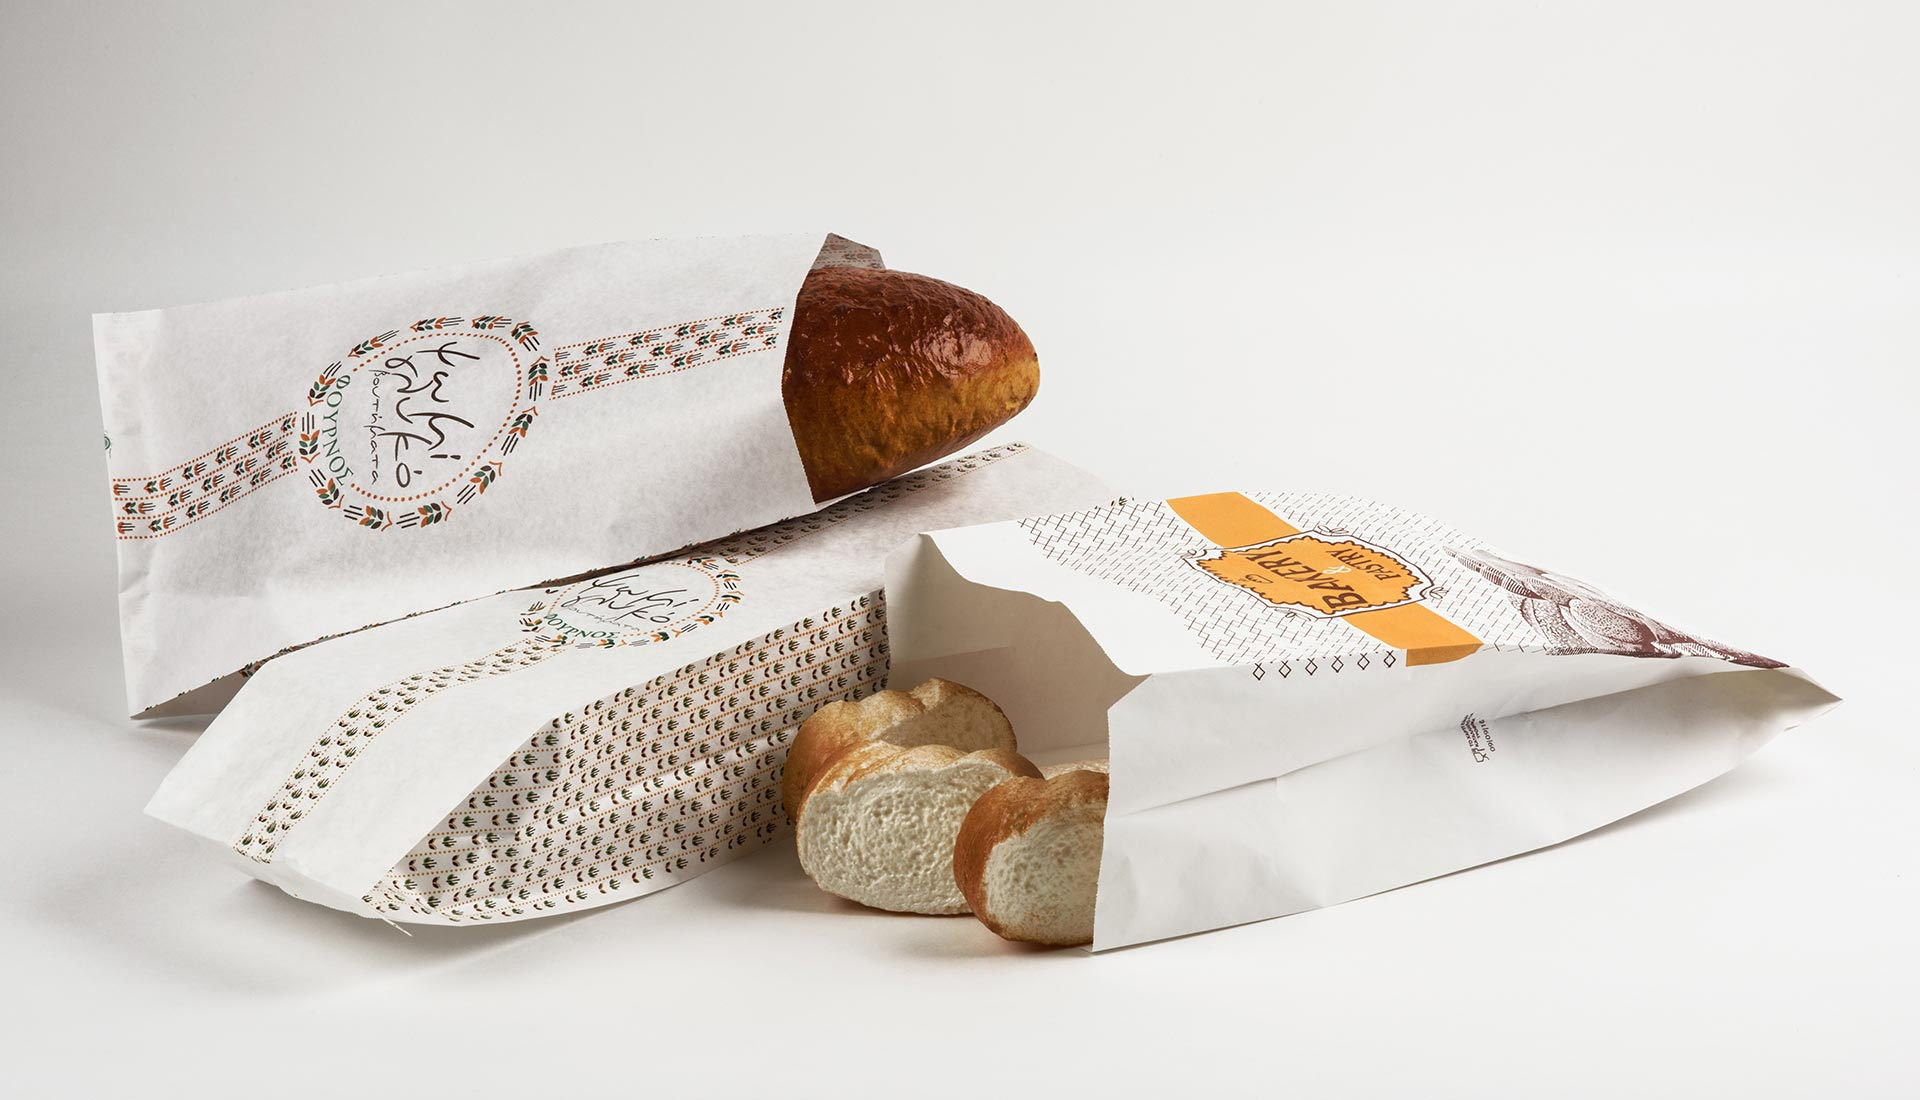 Paper bags for bakery & pastry